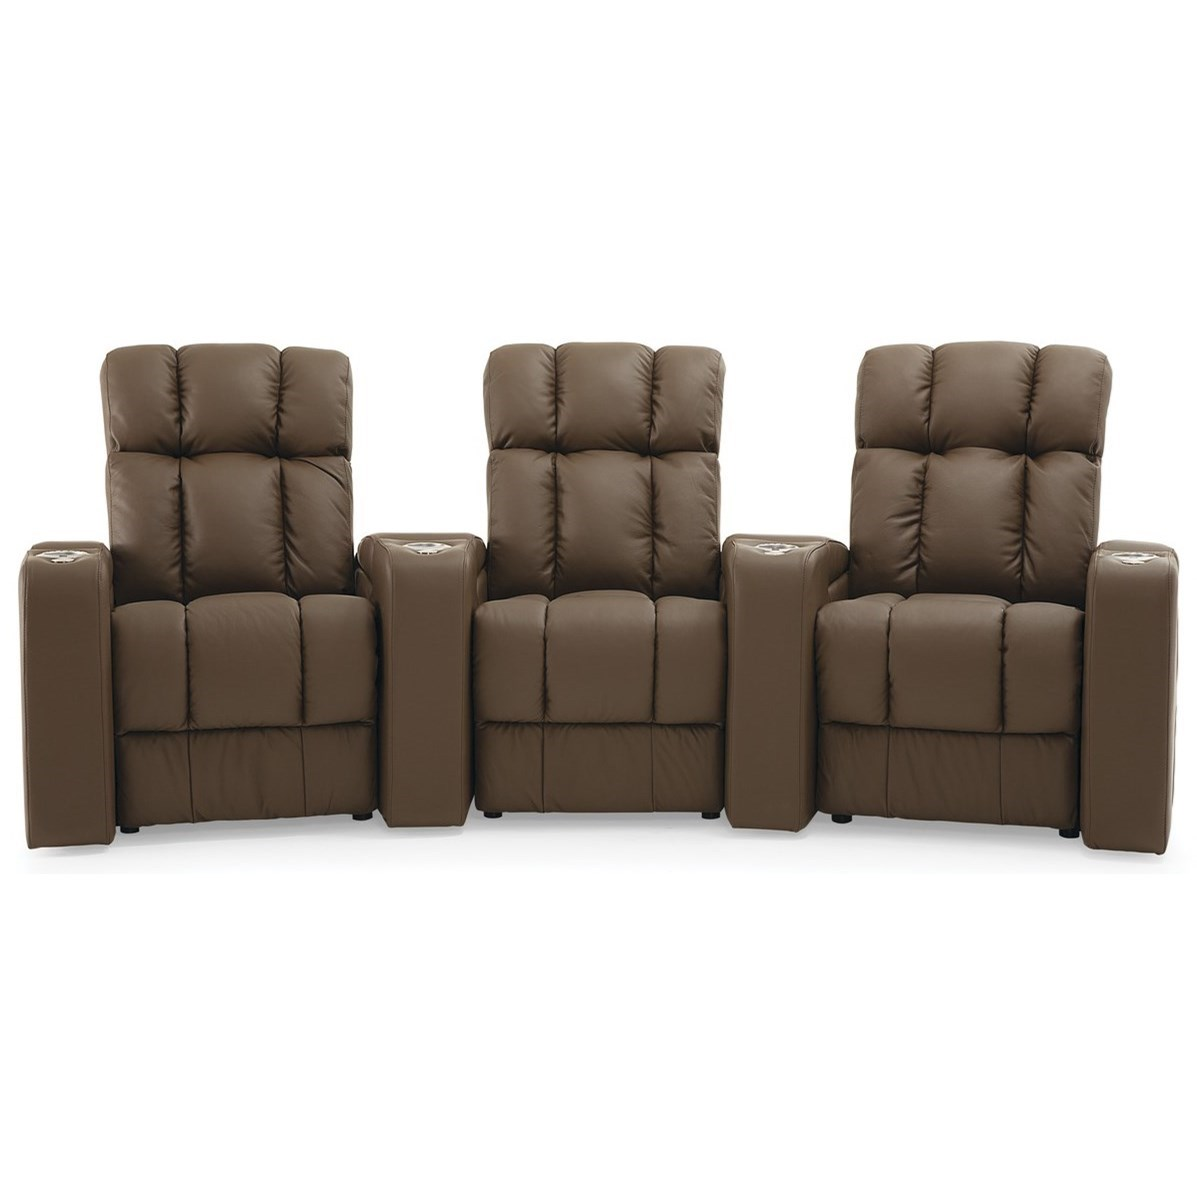 Ovation Theater Seating Reclining Sectional by Palliser at Jordan's Home Furnishings